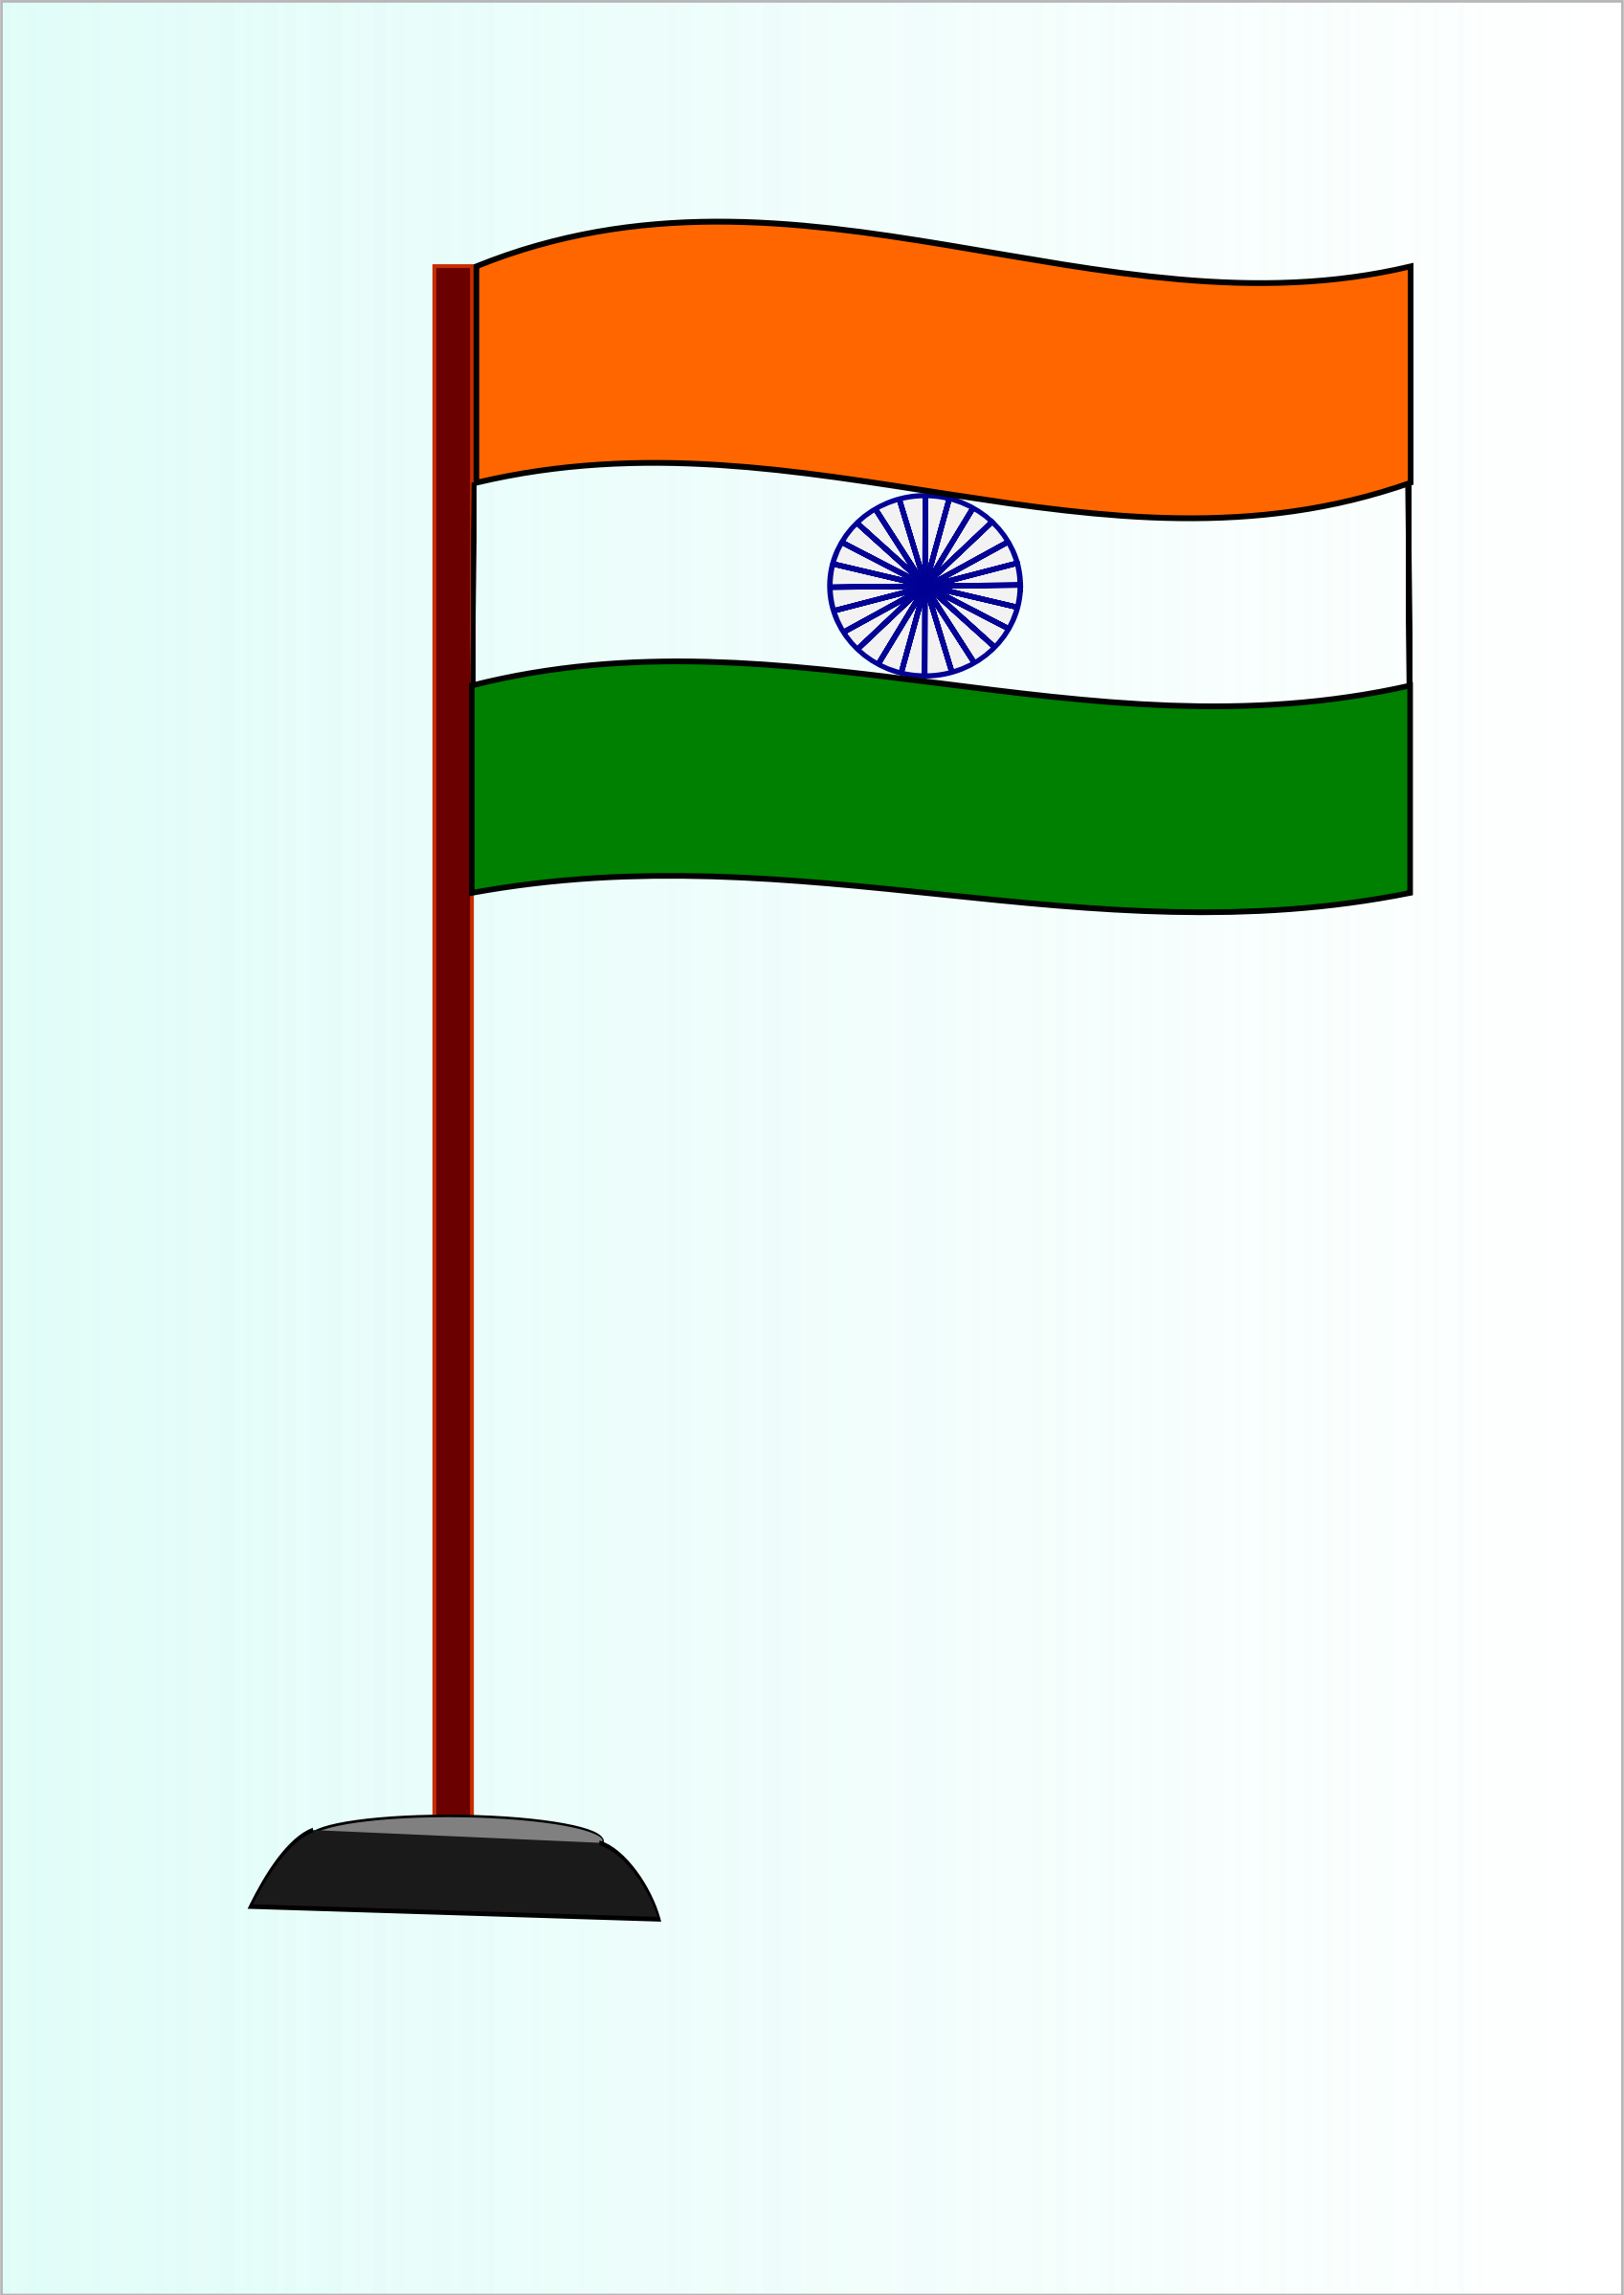 Indian National Flag by saurabhgup889